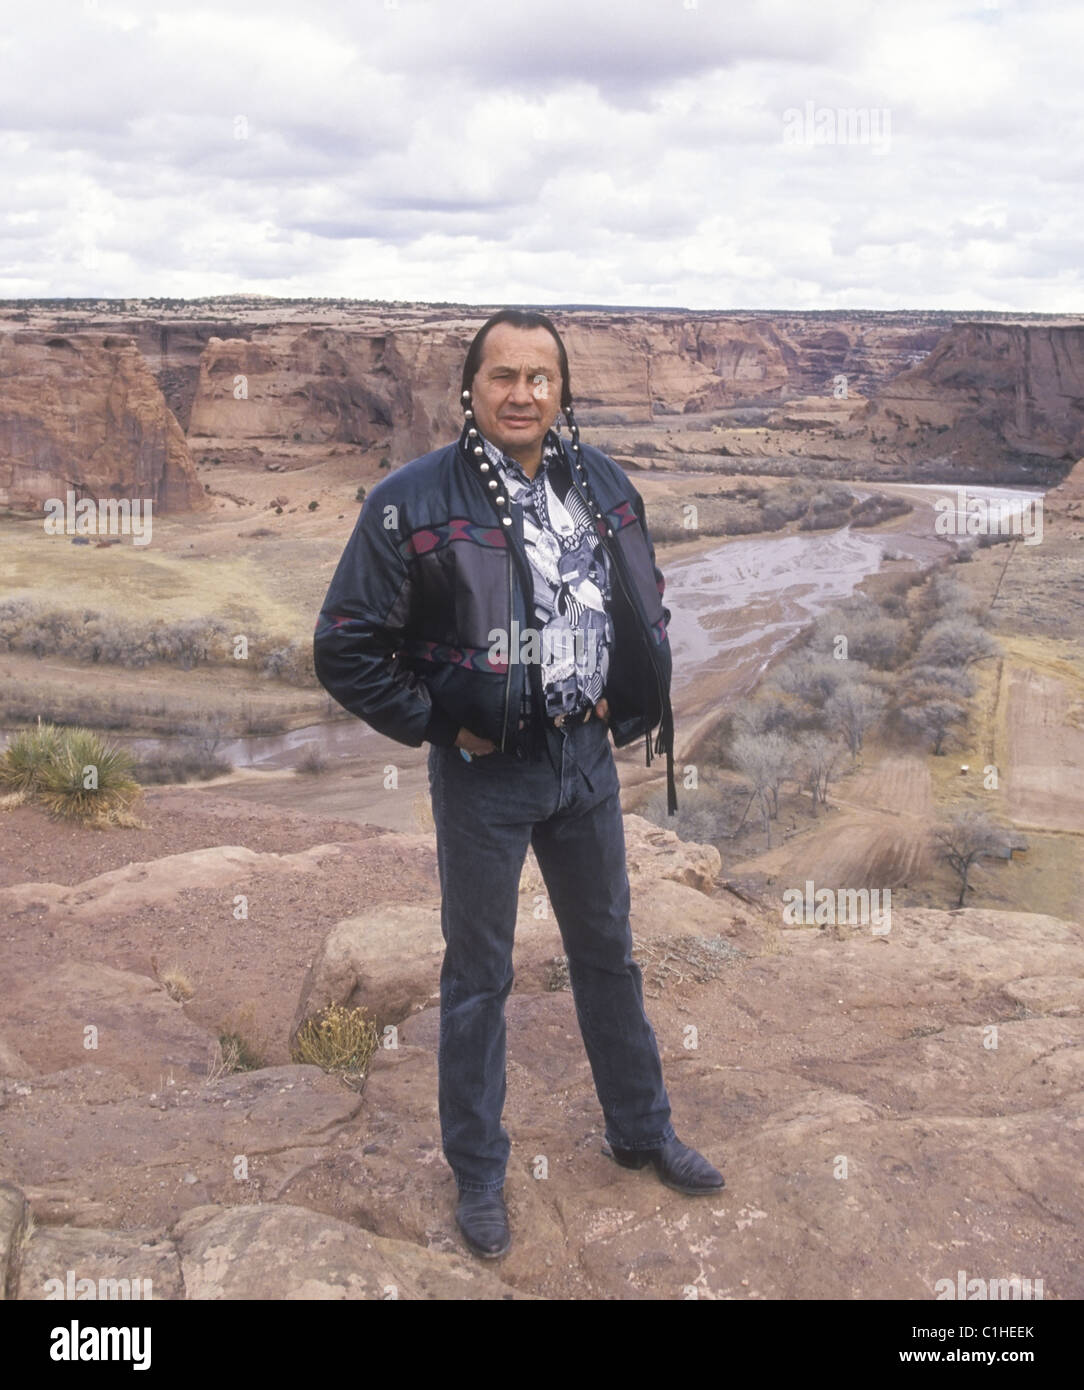 Actor and native American activist Russell Means in the Canyon de Chelly near his home in Arizona. - Stock Image